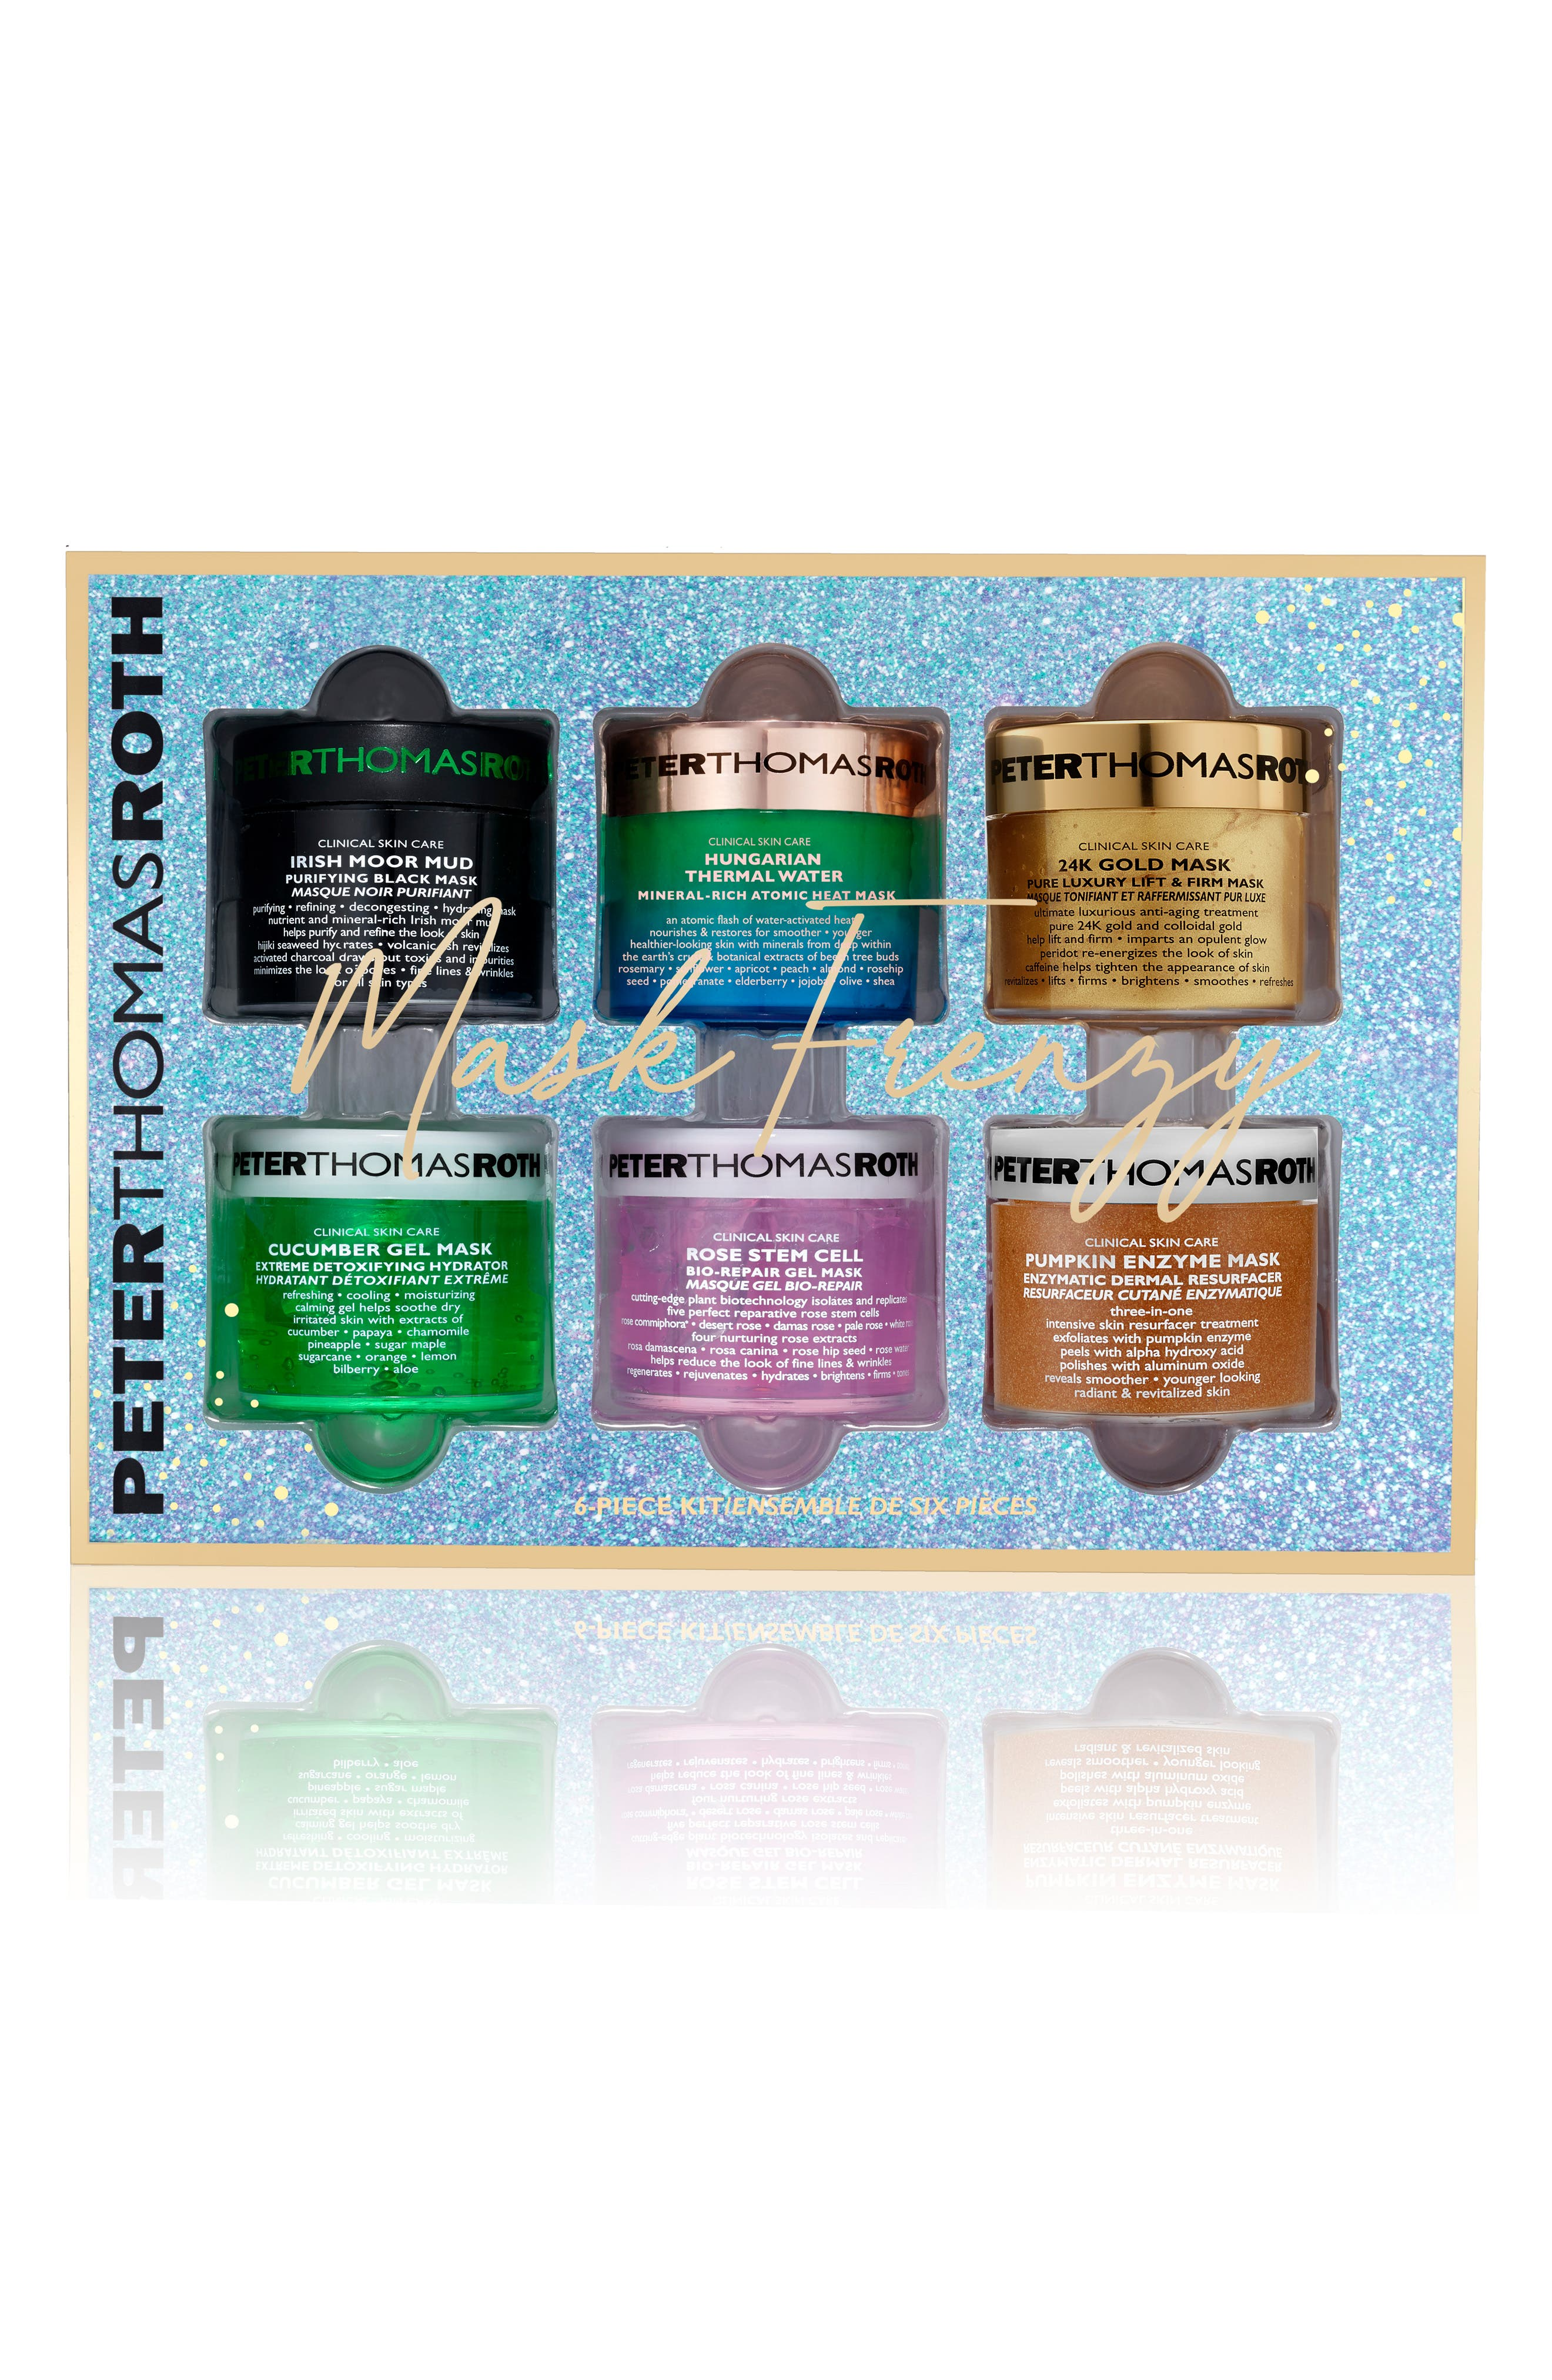 Peter Thomas Roth MASK FRENZY COLLECTION